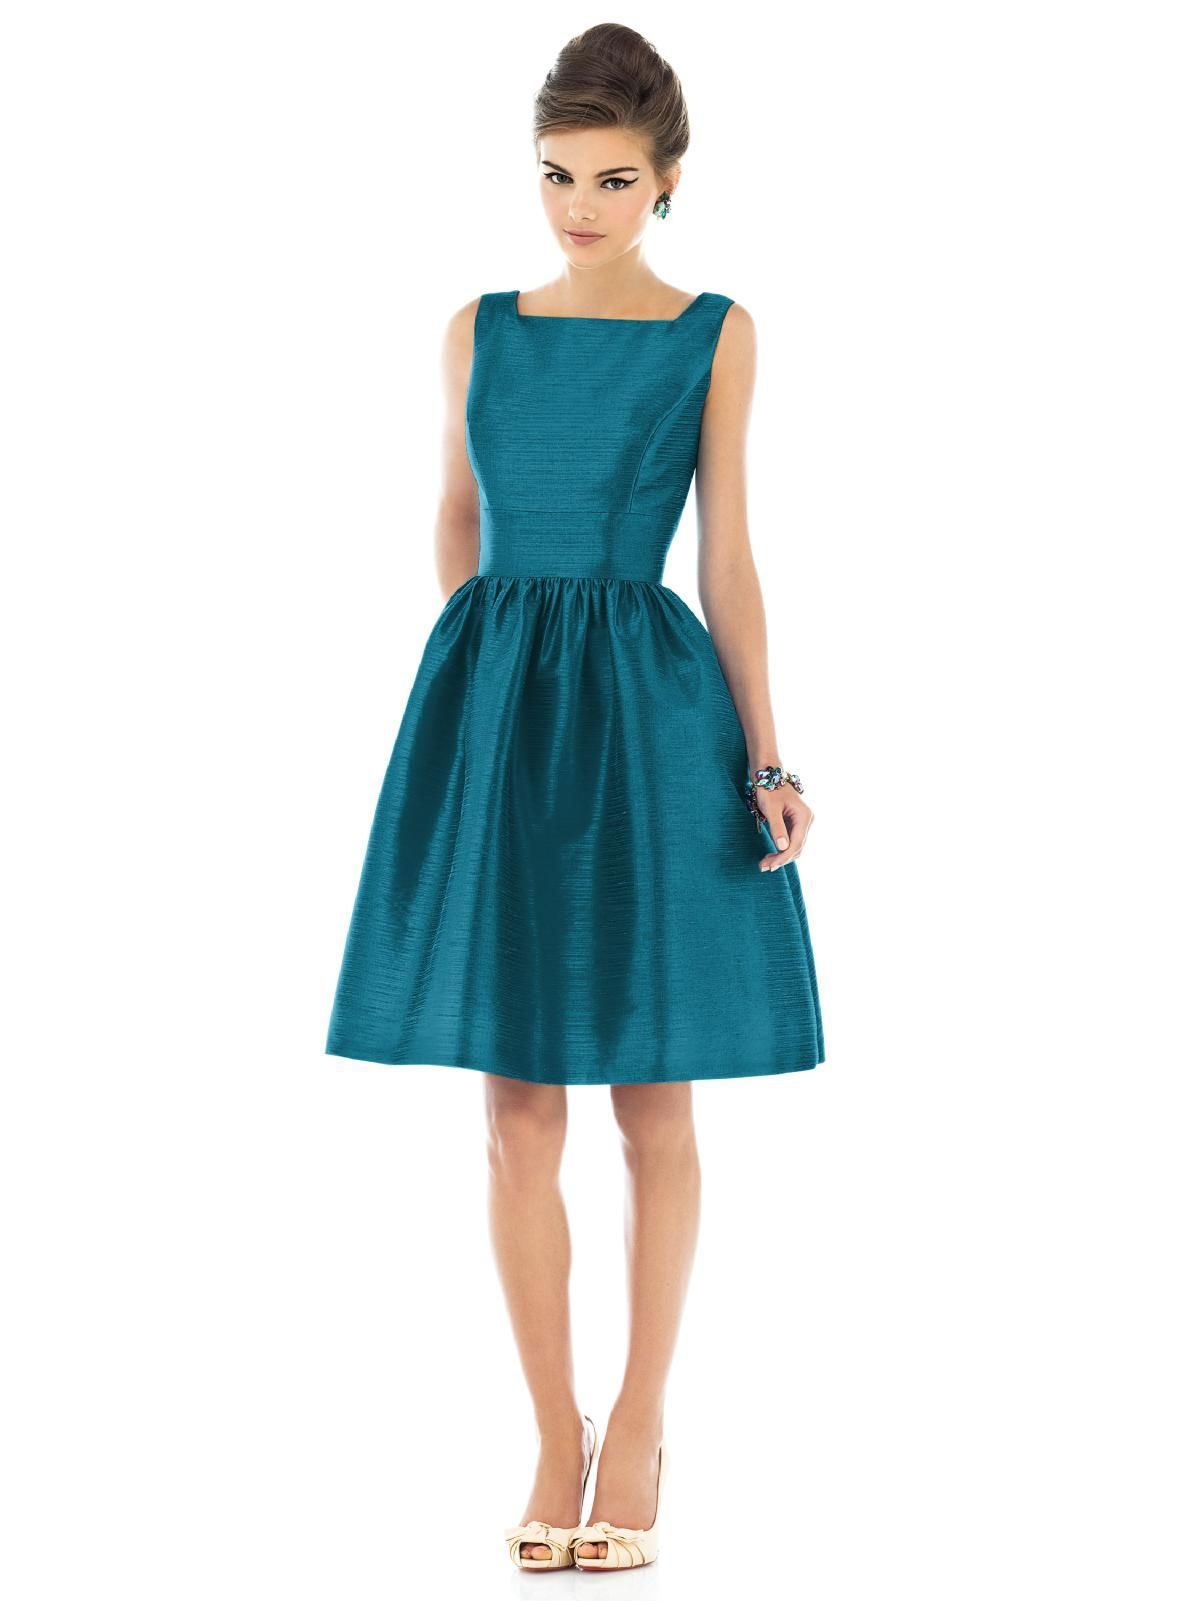 Teal retro bridesmaid dress oh they say when you marry in june teal retro bridesmaid dress ombrellifo Image collections